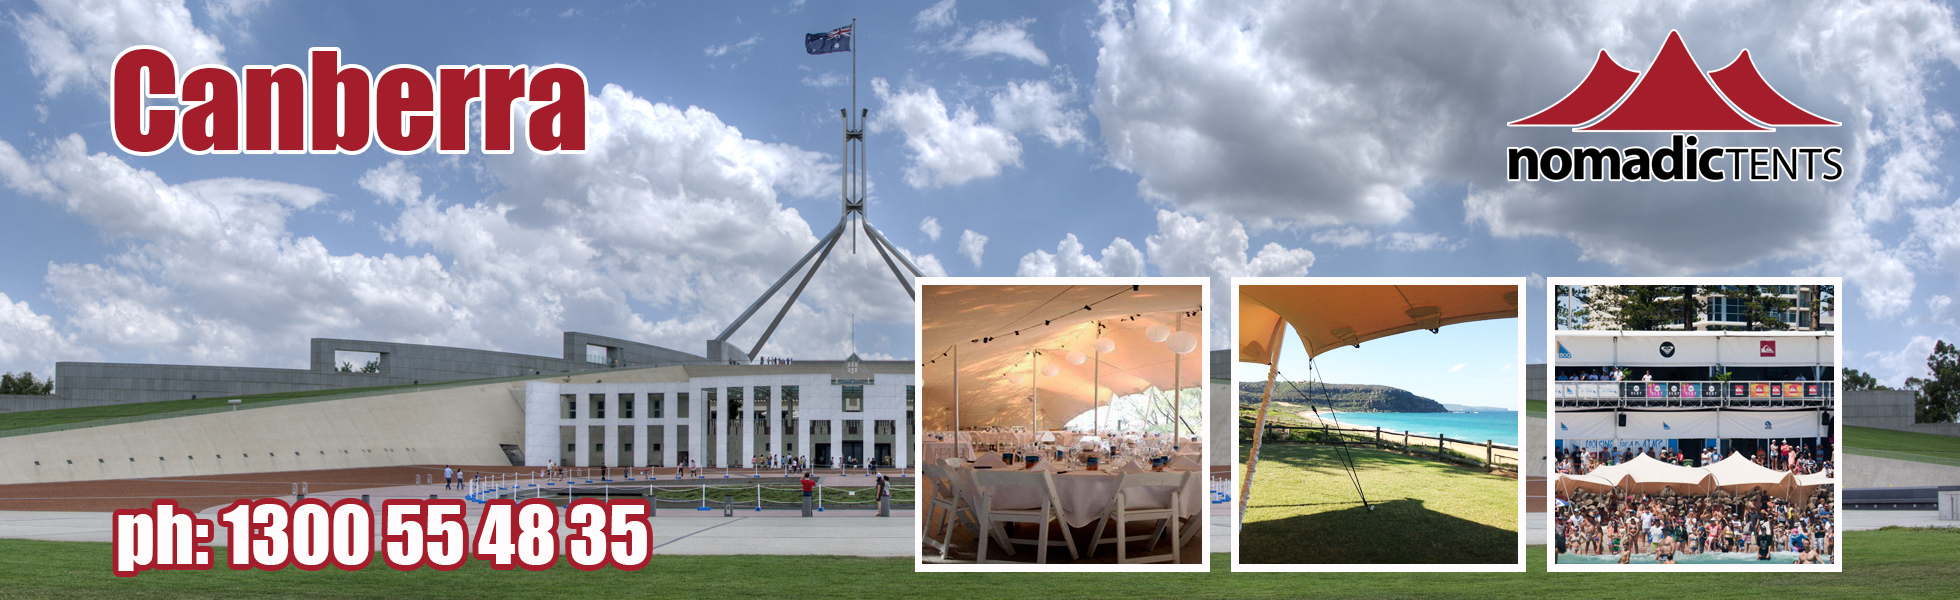 Nomadic Tents in Canberra & Stretch Tents u0026 Marquee Hire Canberra - Nomadic Tents Australia